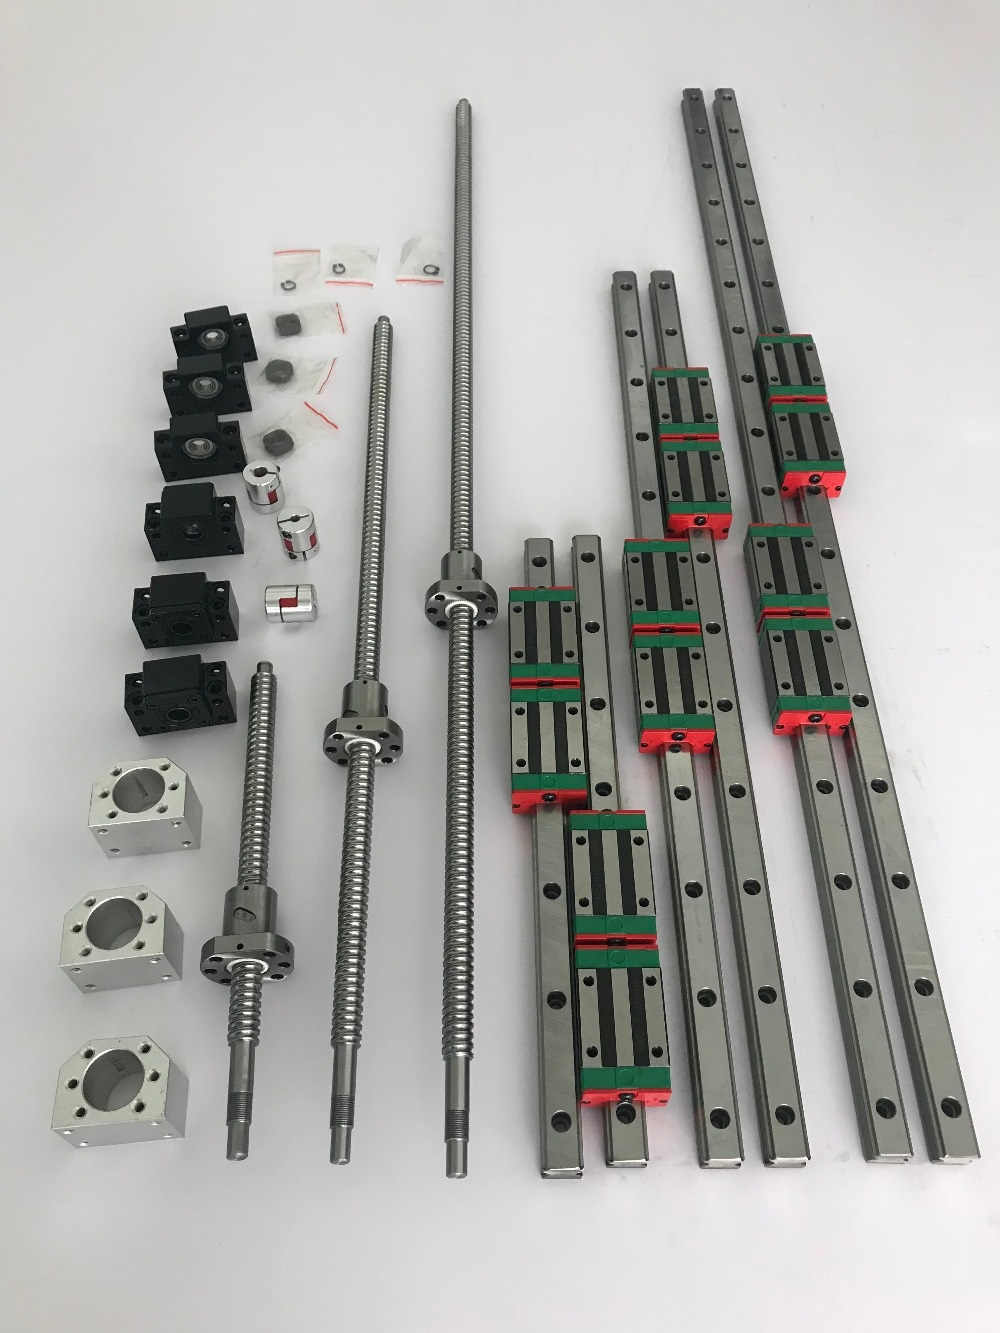 6set HGR20- 400/1000/1600mm Linear guide rail + SFU1605- 450/1050/1650mm ballscrew + BK12/BF12 + Nut housing CNC parts6set HGR20- 400/1000/1600mm Linear guide rail + SFU1605- 450/1050/1650mm ballscrew + BK12/BF12 + Nut housing CNC parts